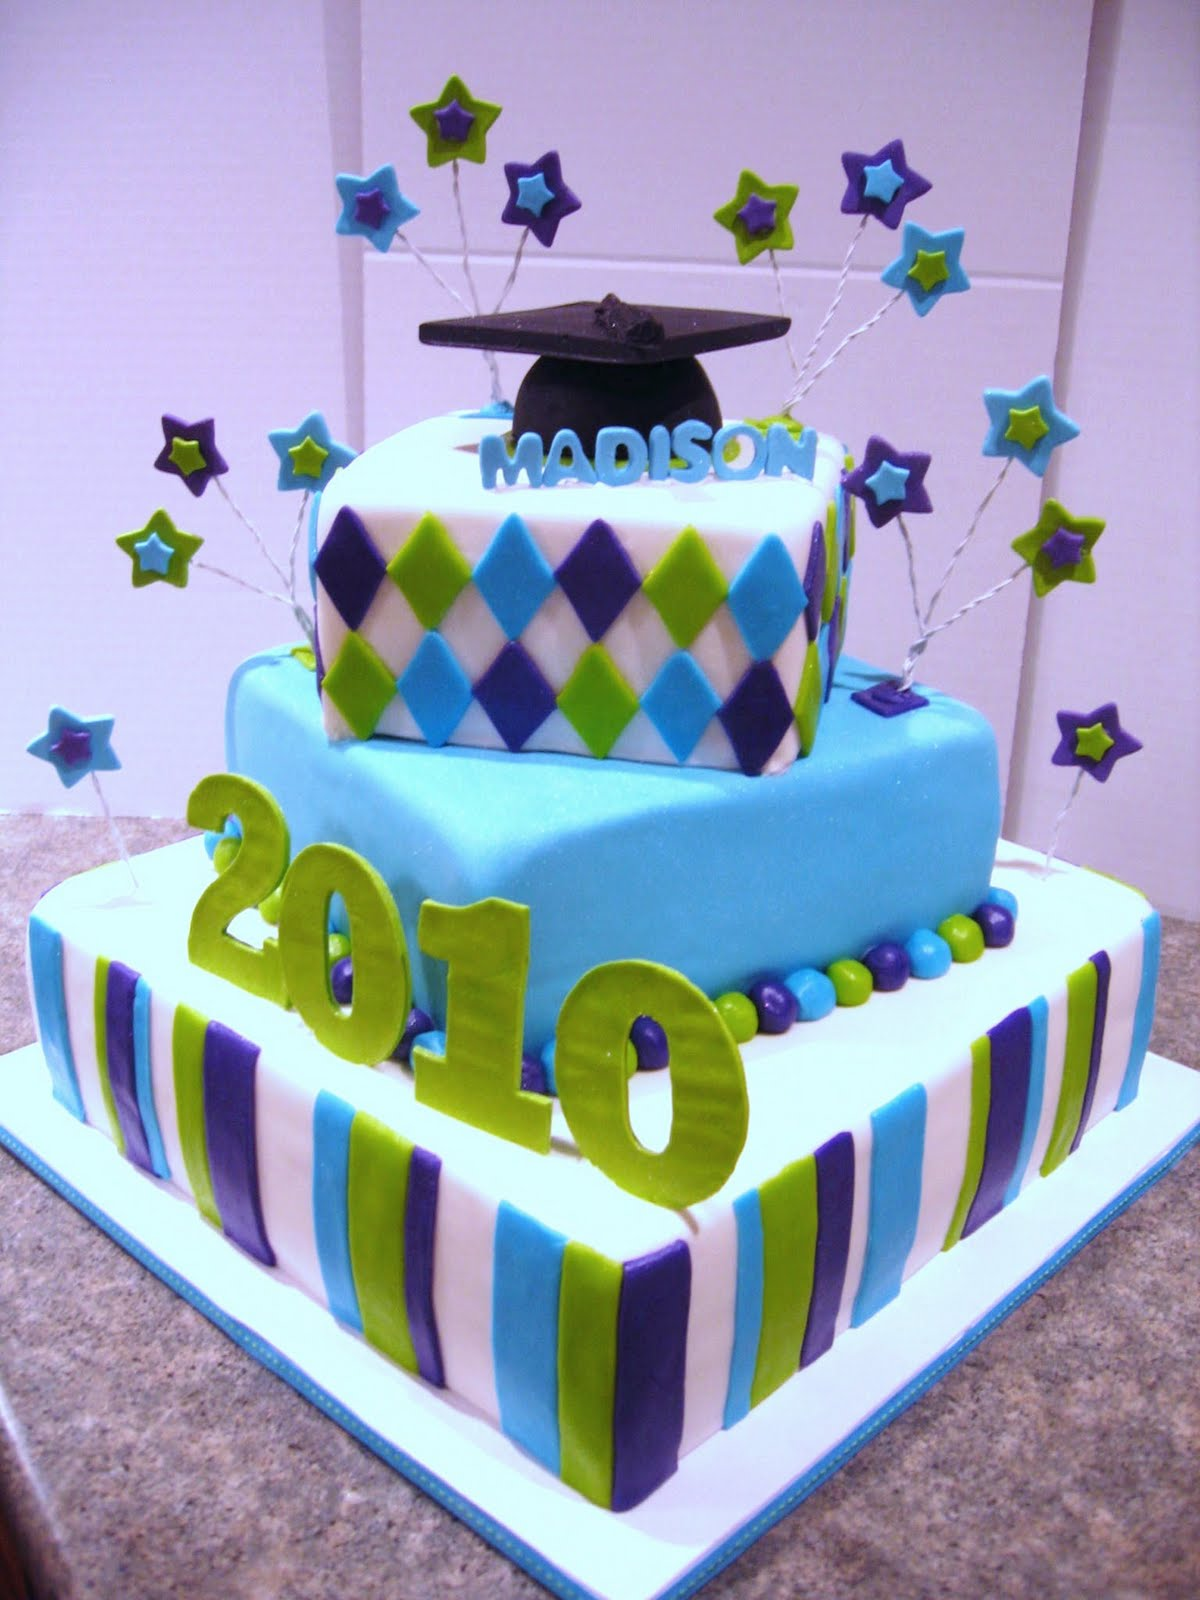 Graduation Cake Images Free : My cakes and treats: Graduation Cakes